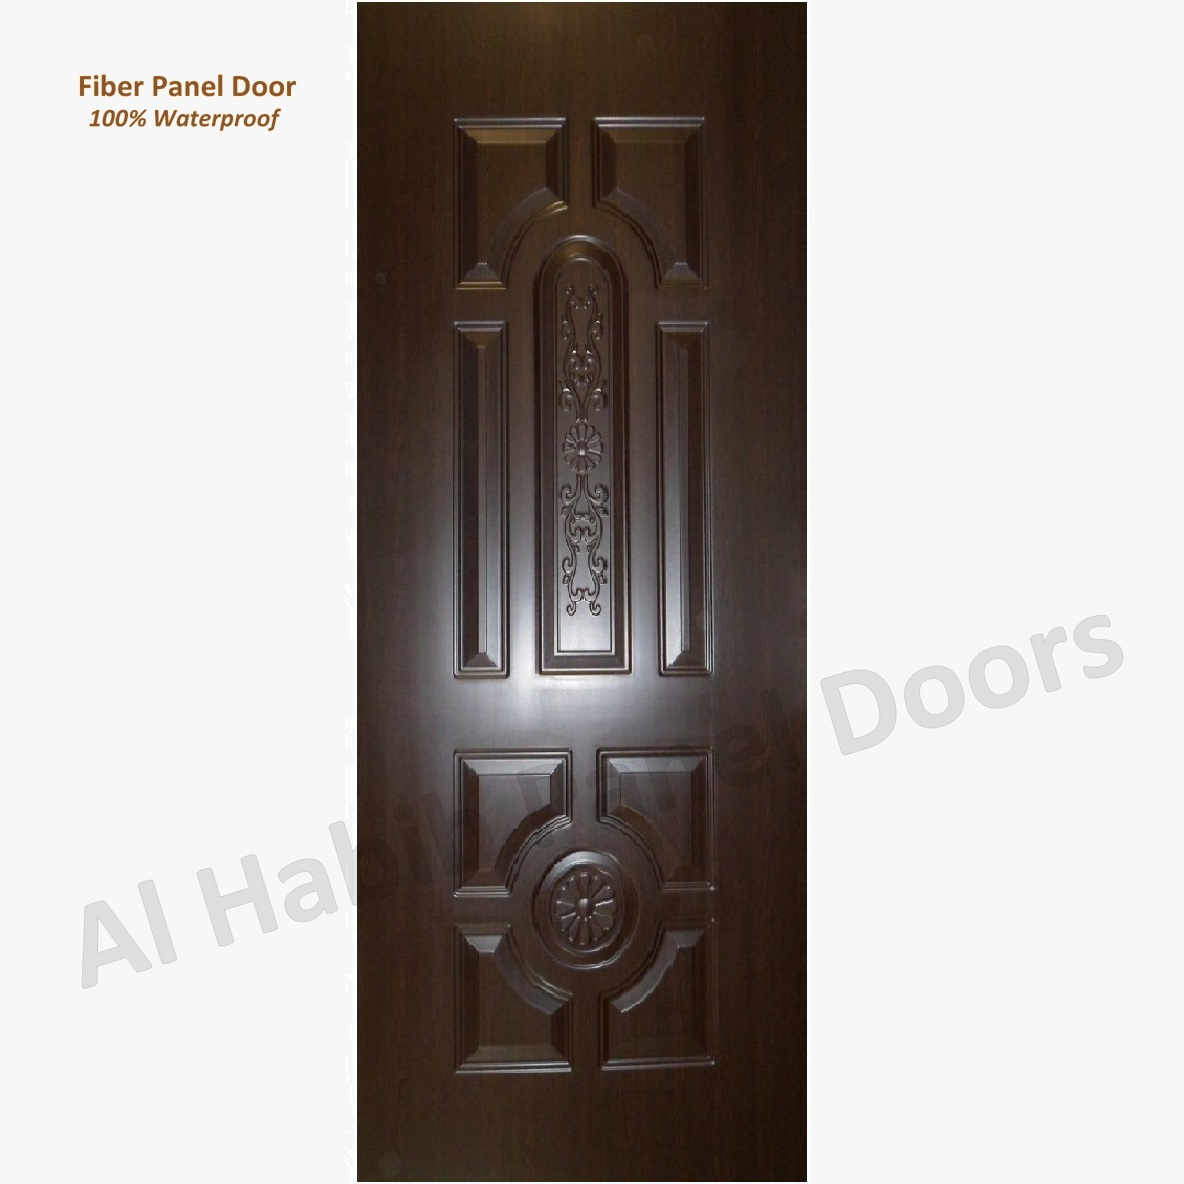 Space Saving Ideas For Small Bedrooms Fiber Panel Door Choco Brown Hpd483 Fiber Panel Doors